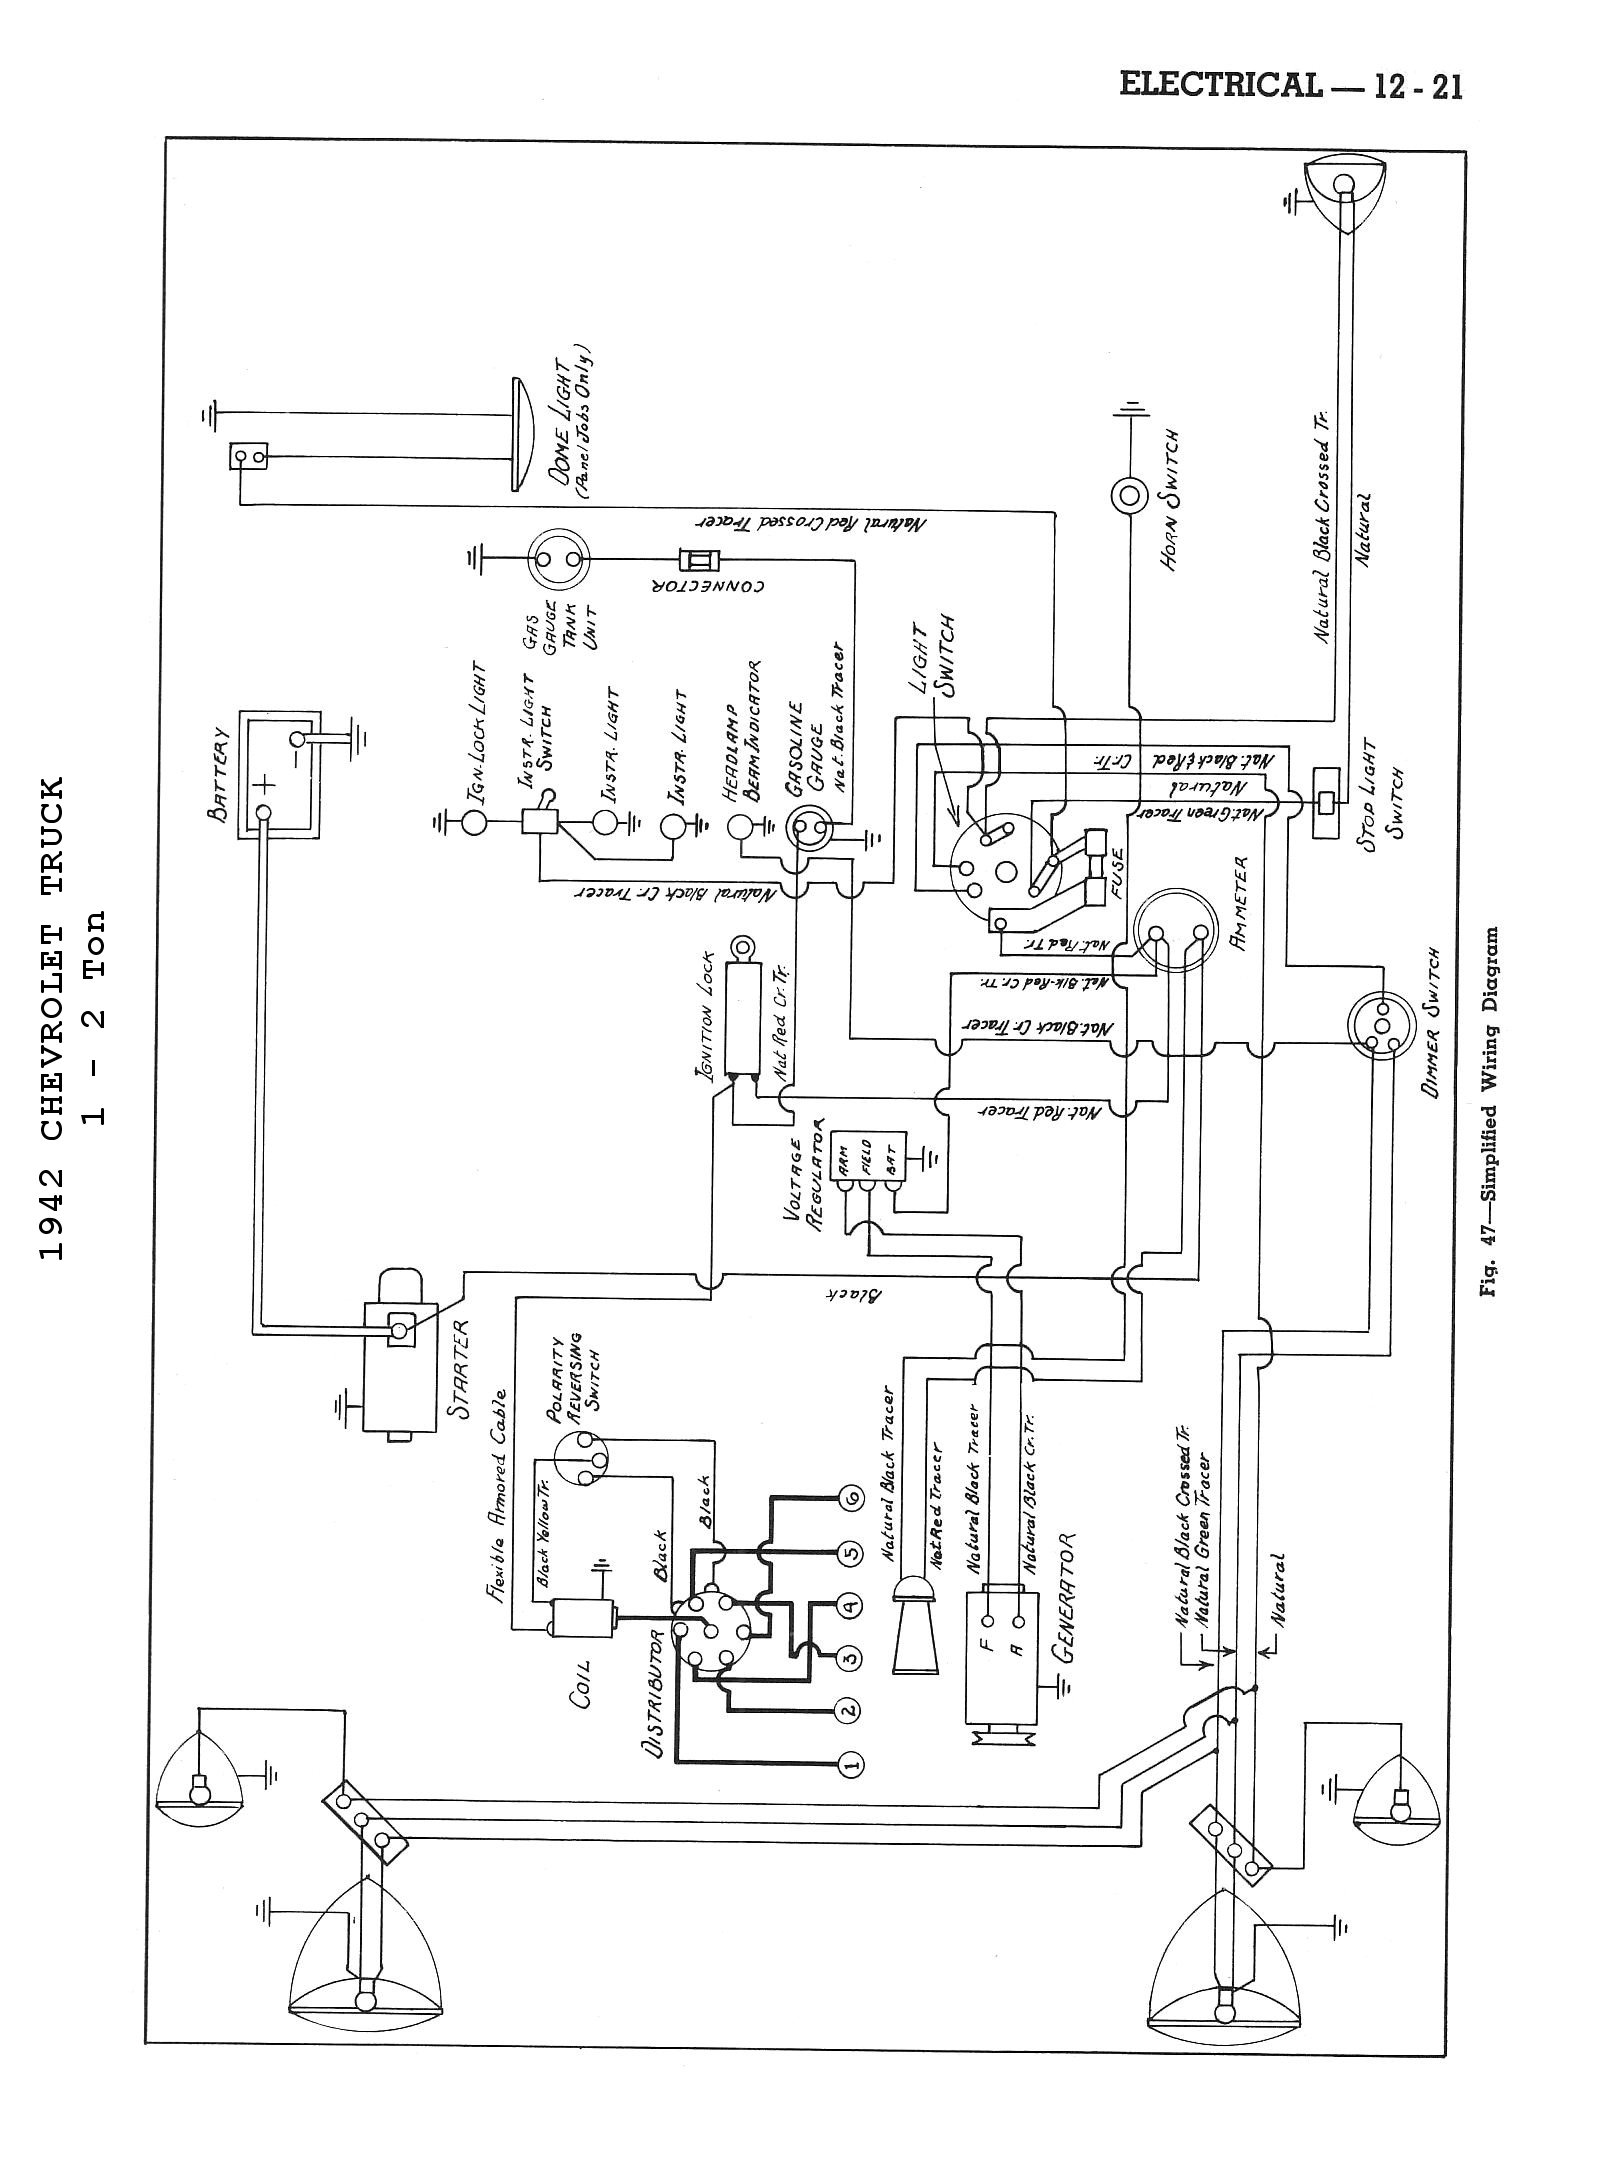 42cm4x2t1221 chevy wiring diagrams 1957 chevy truck turn signal wiring diagram at pacquiaovsvargaslive.co